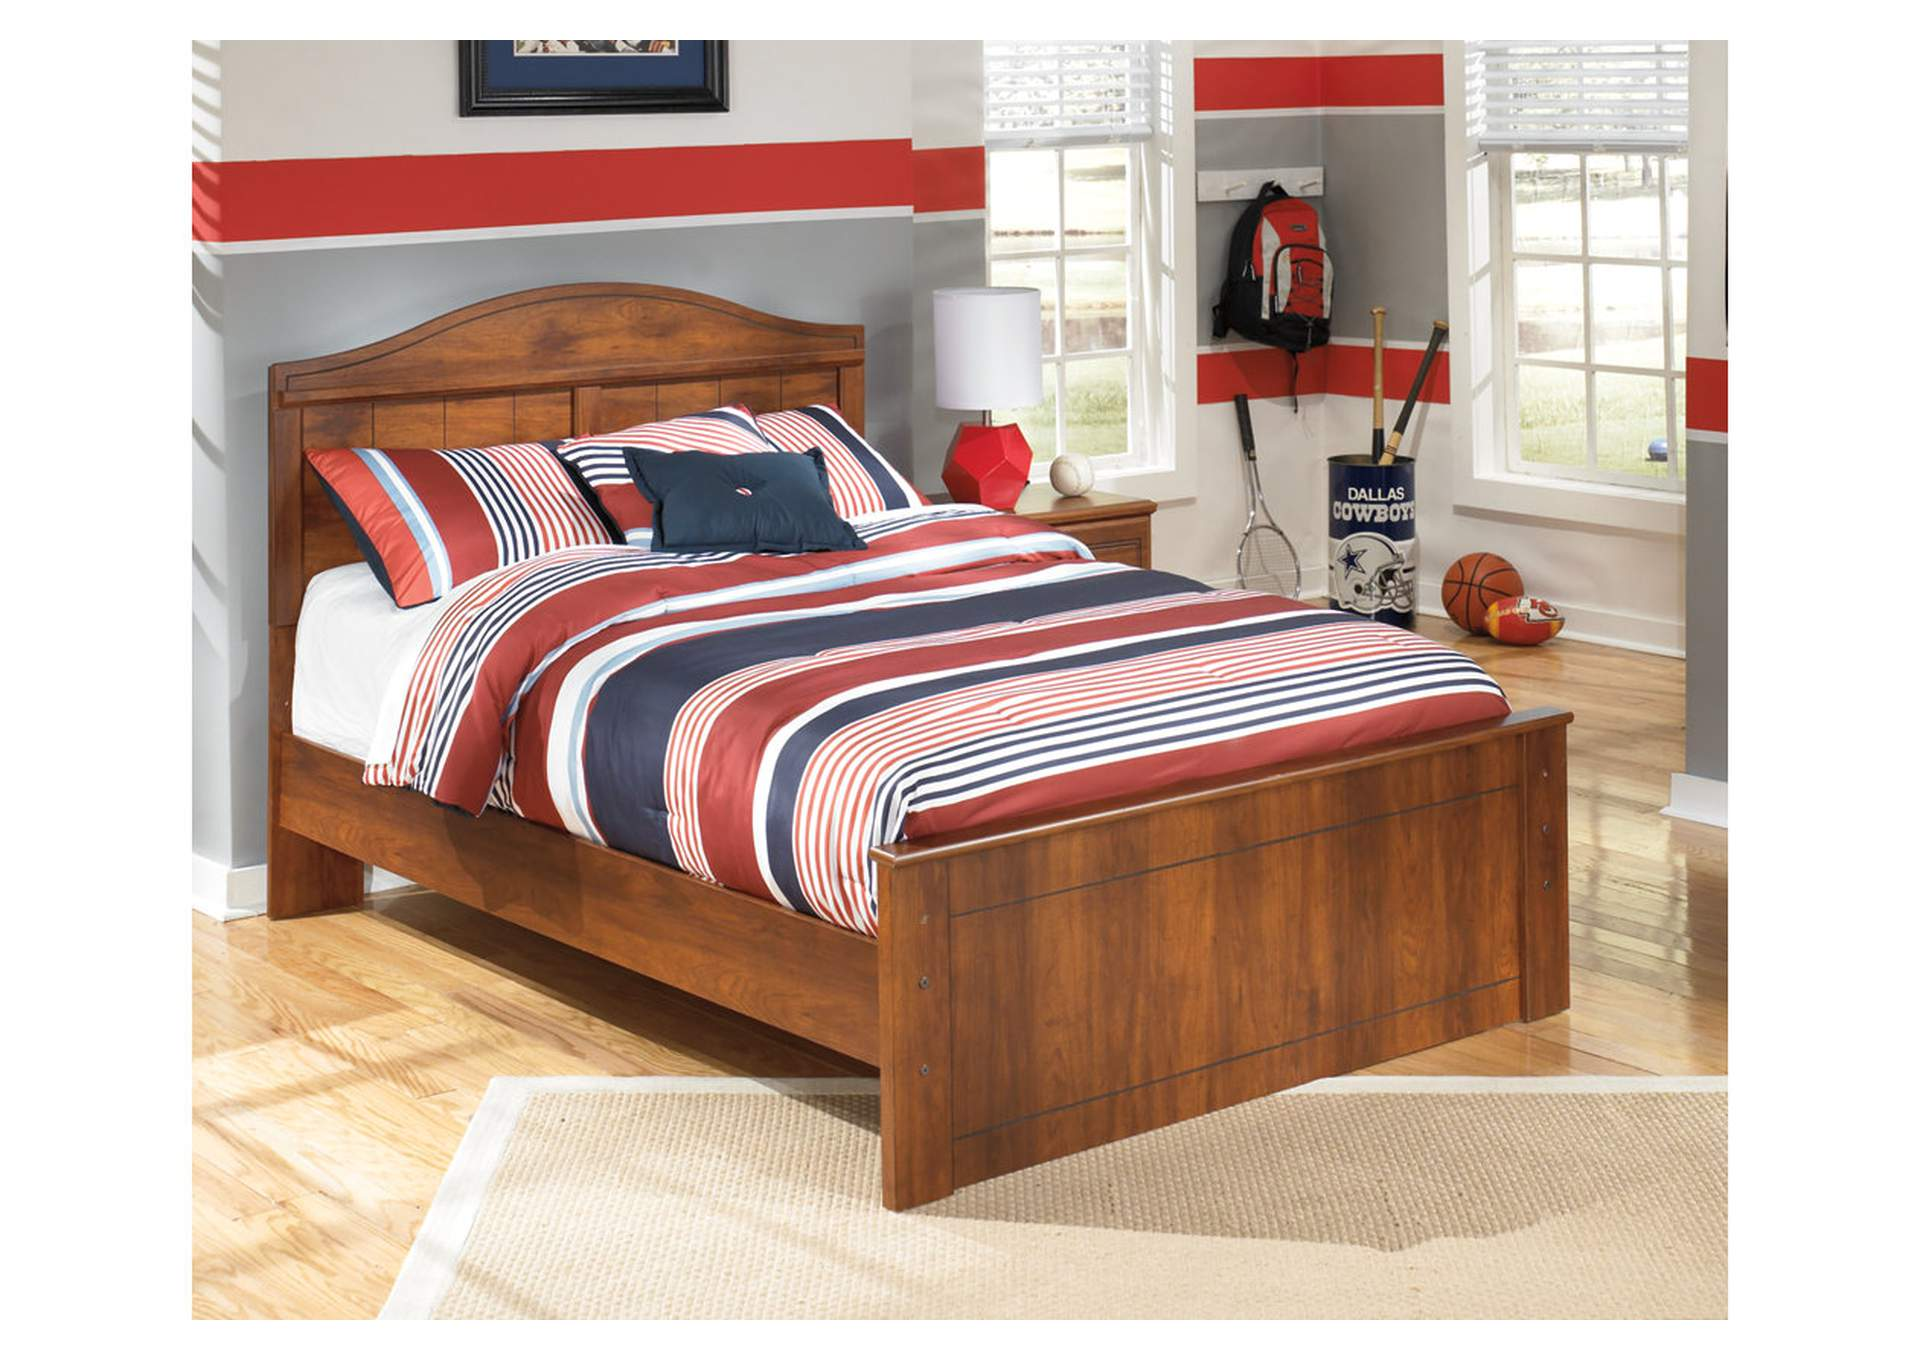 Barchan Full Panel Bed,Signature Design By Ashley